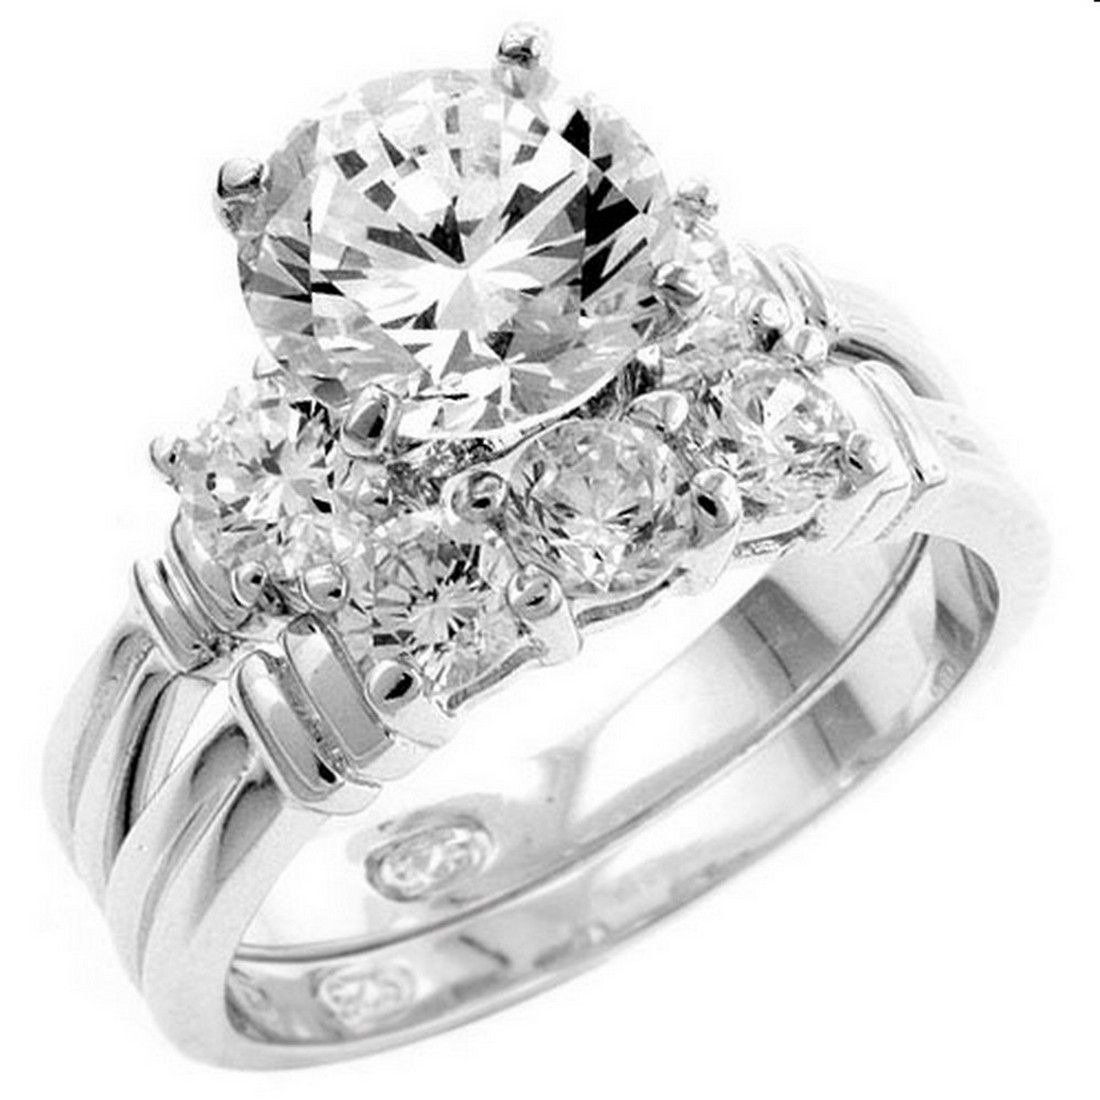 the most expensive diamond wedding ring - Most Expensive Wedding Rings